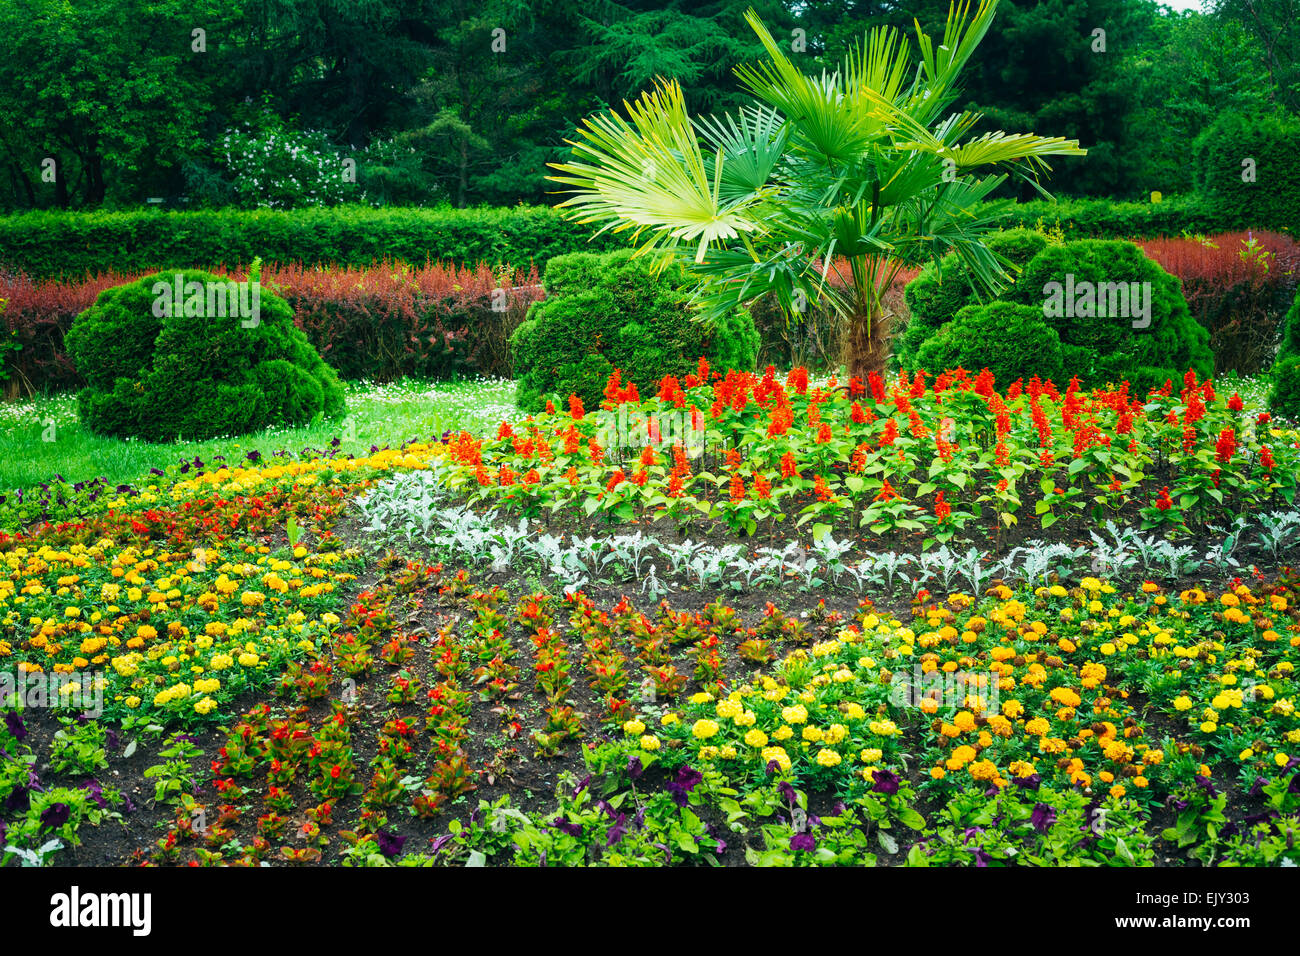 Flowerbed, Small Green Trees And Cuted Bushes In Garden. Beautiful Summer Park. Landscaping. Garden Design Stock Photo